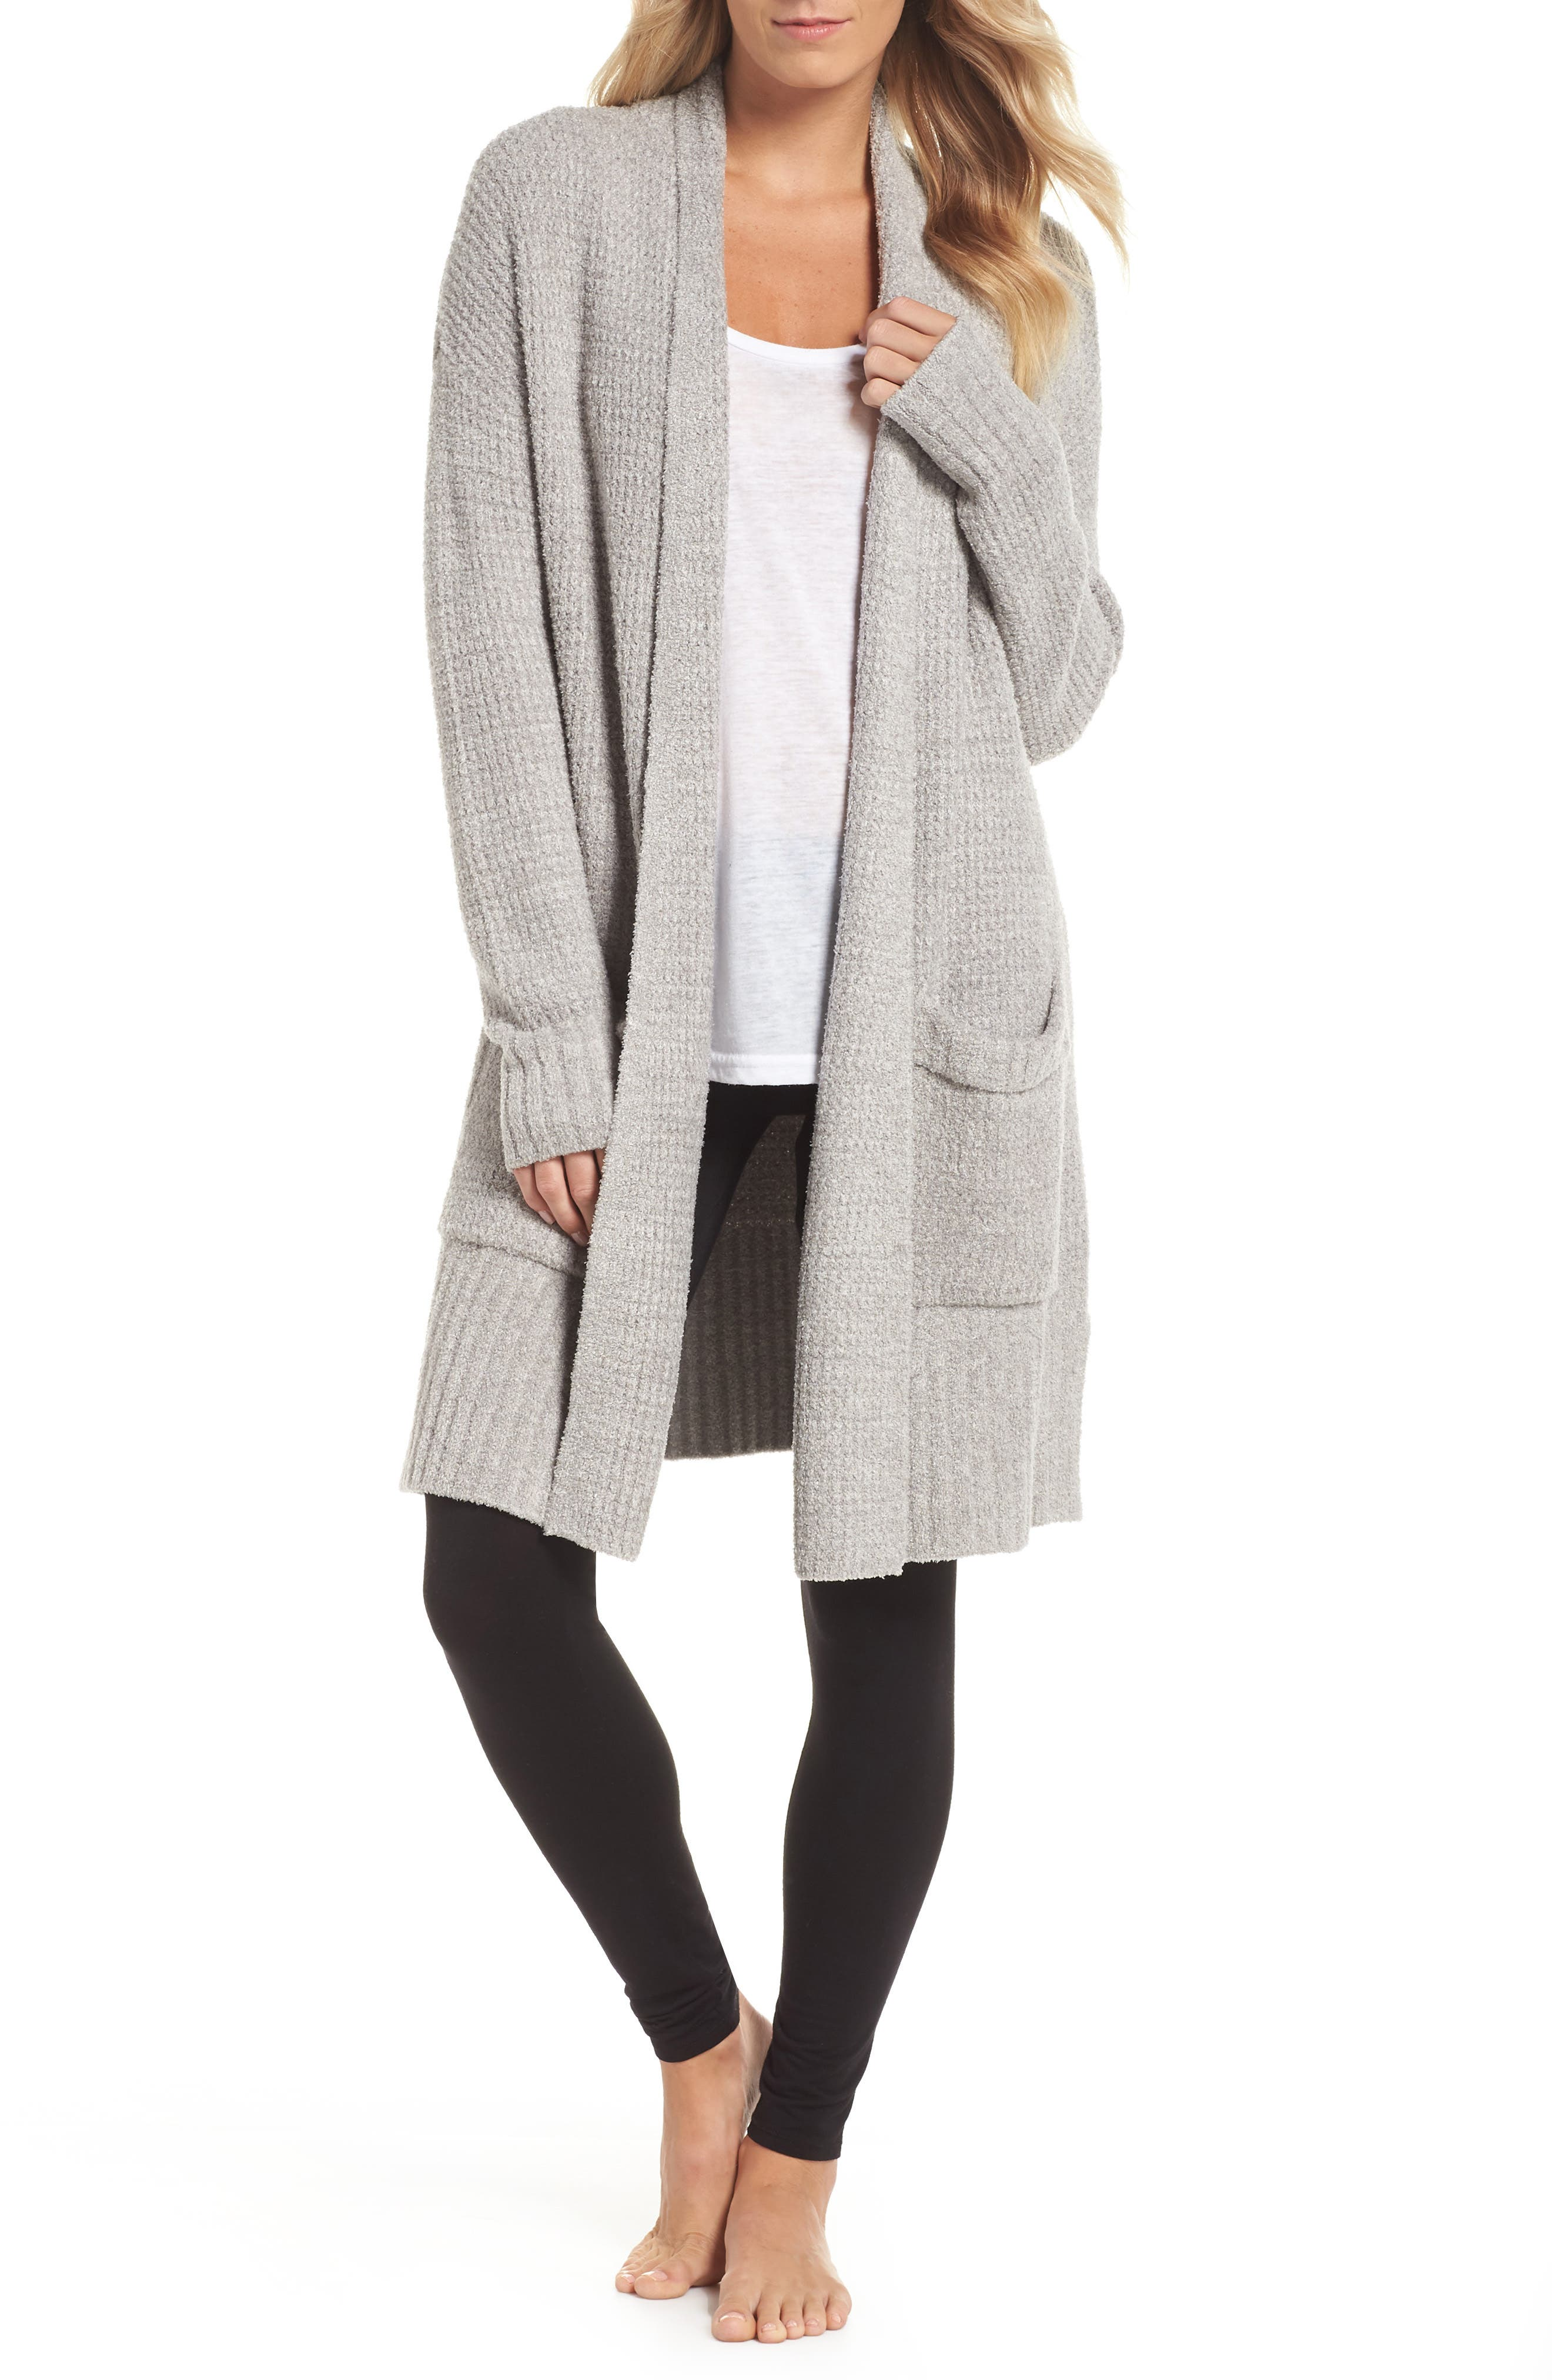 CozyChic<sup>®</sup> Lite Long Weekend Cardigan,                             Main thumbnail 1, color,                             PEWTER/ SILVER